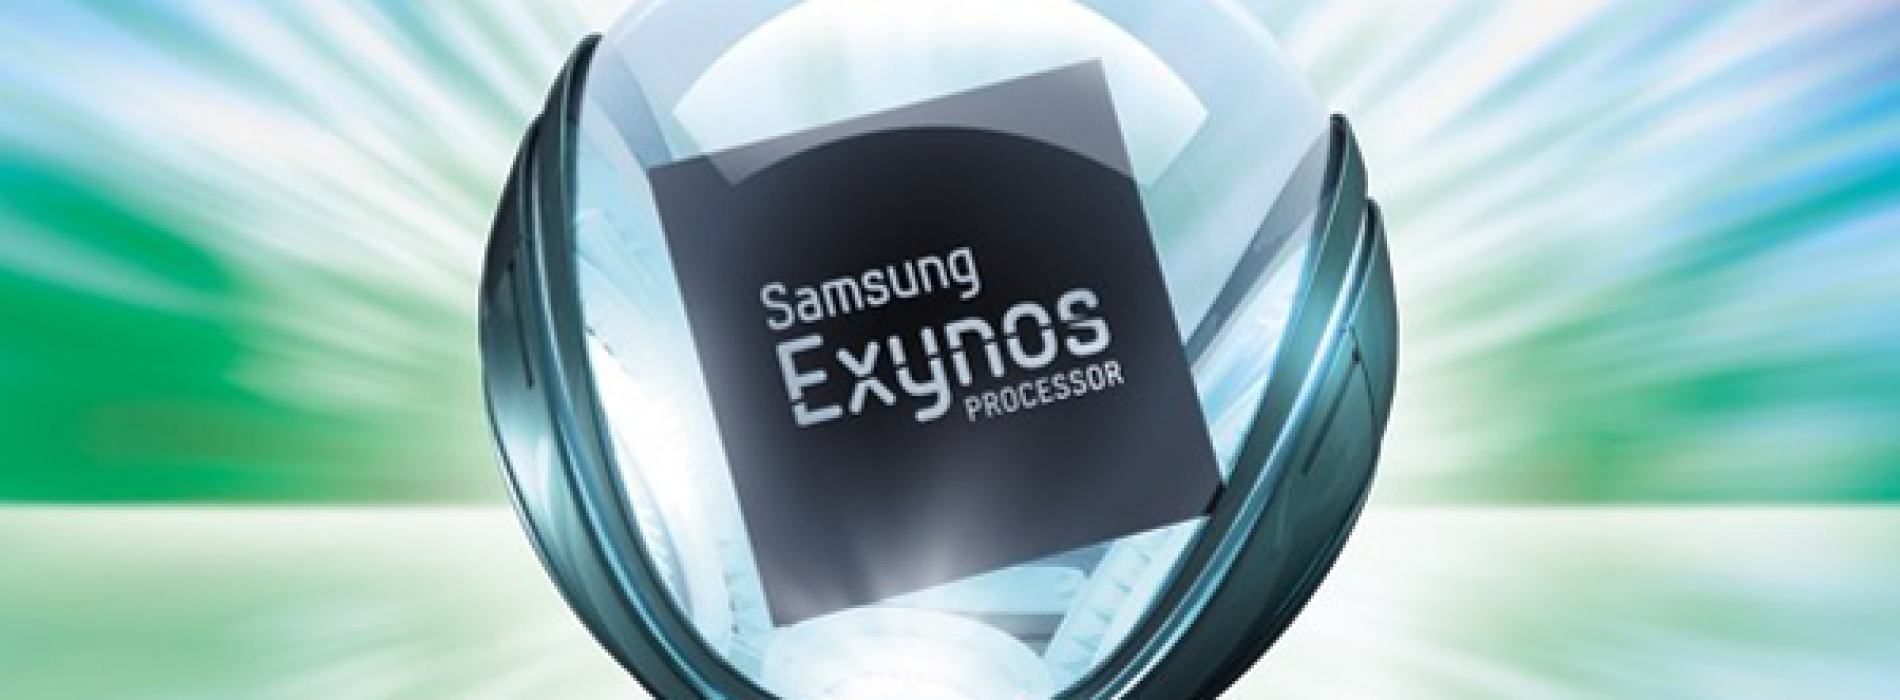 Samsung announces new 1.4GHz quadcore Exynos processor, to power next Galaxy handset